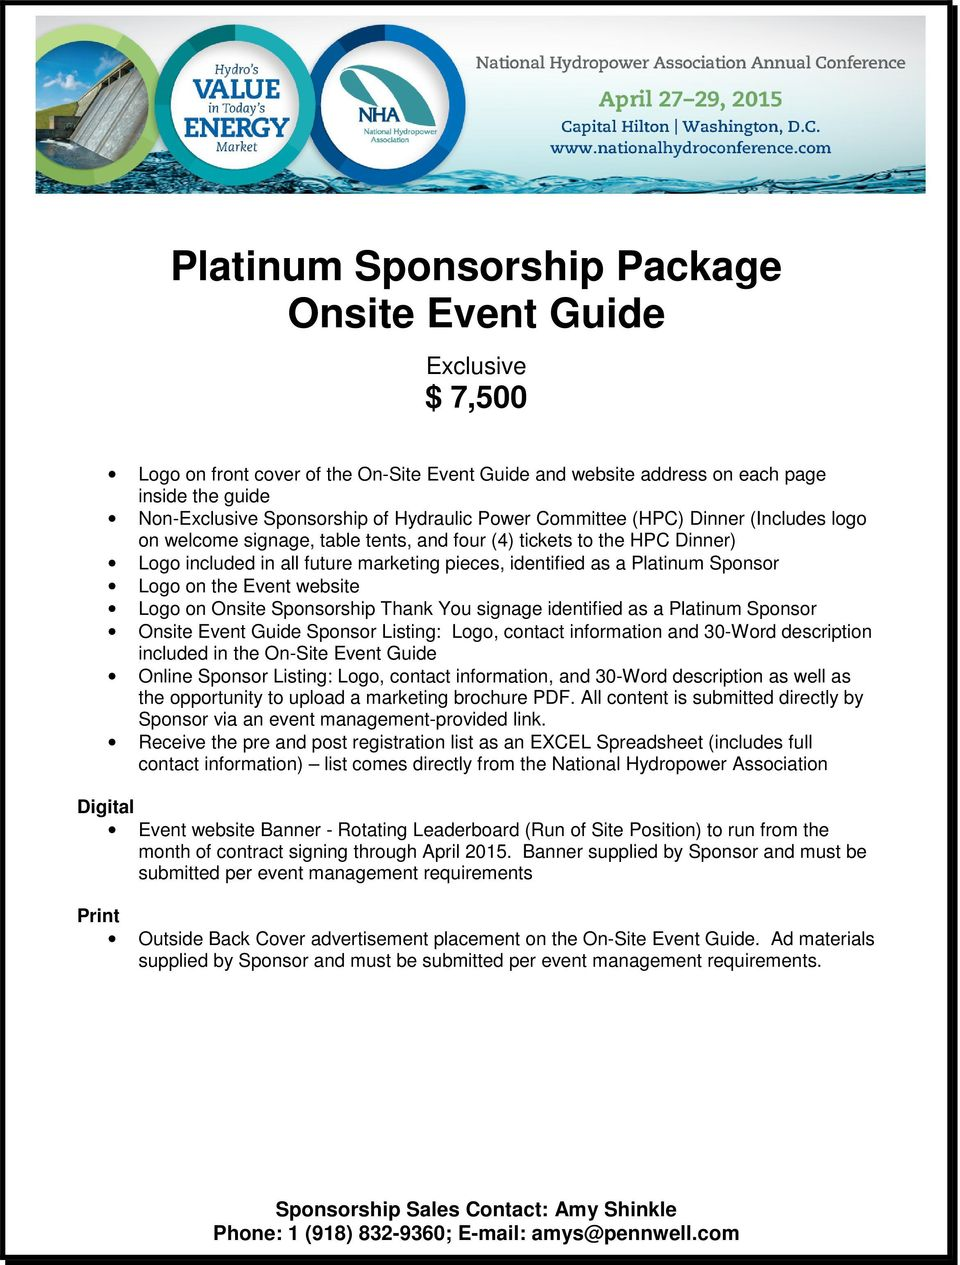 Sponsor Logo on Onsite Sponsorship Thank You signage identified as a Platinum Sponsor Digital Event website Banner - Rotating Leaderboard (Run of Site Position) to run from the month of contract